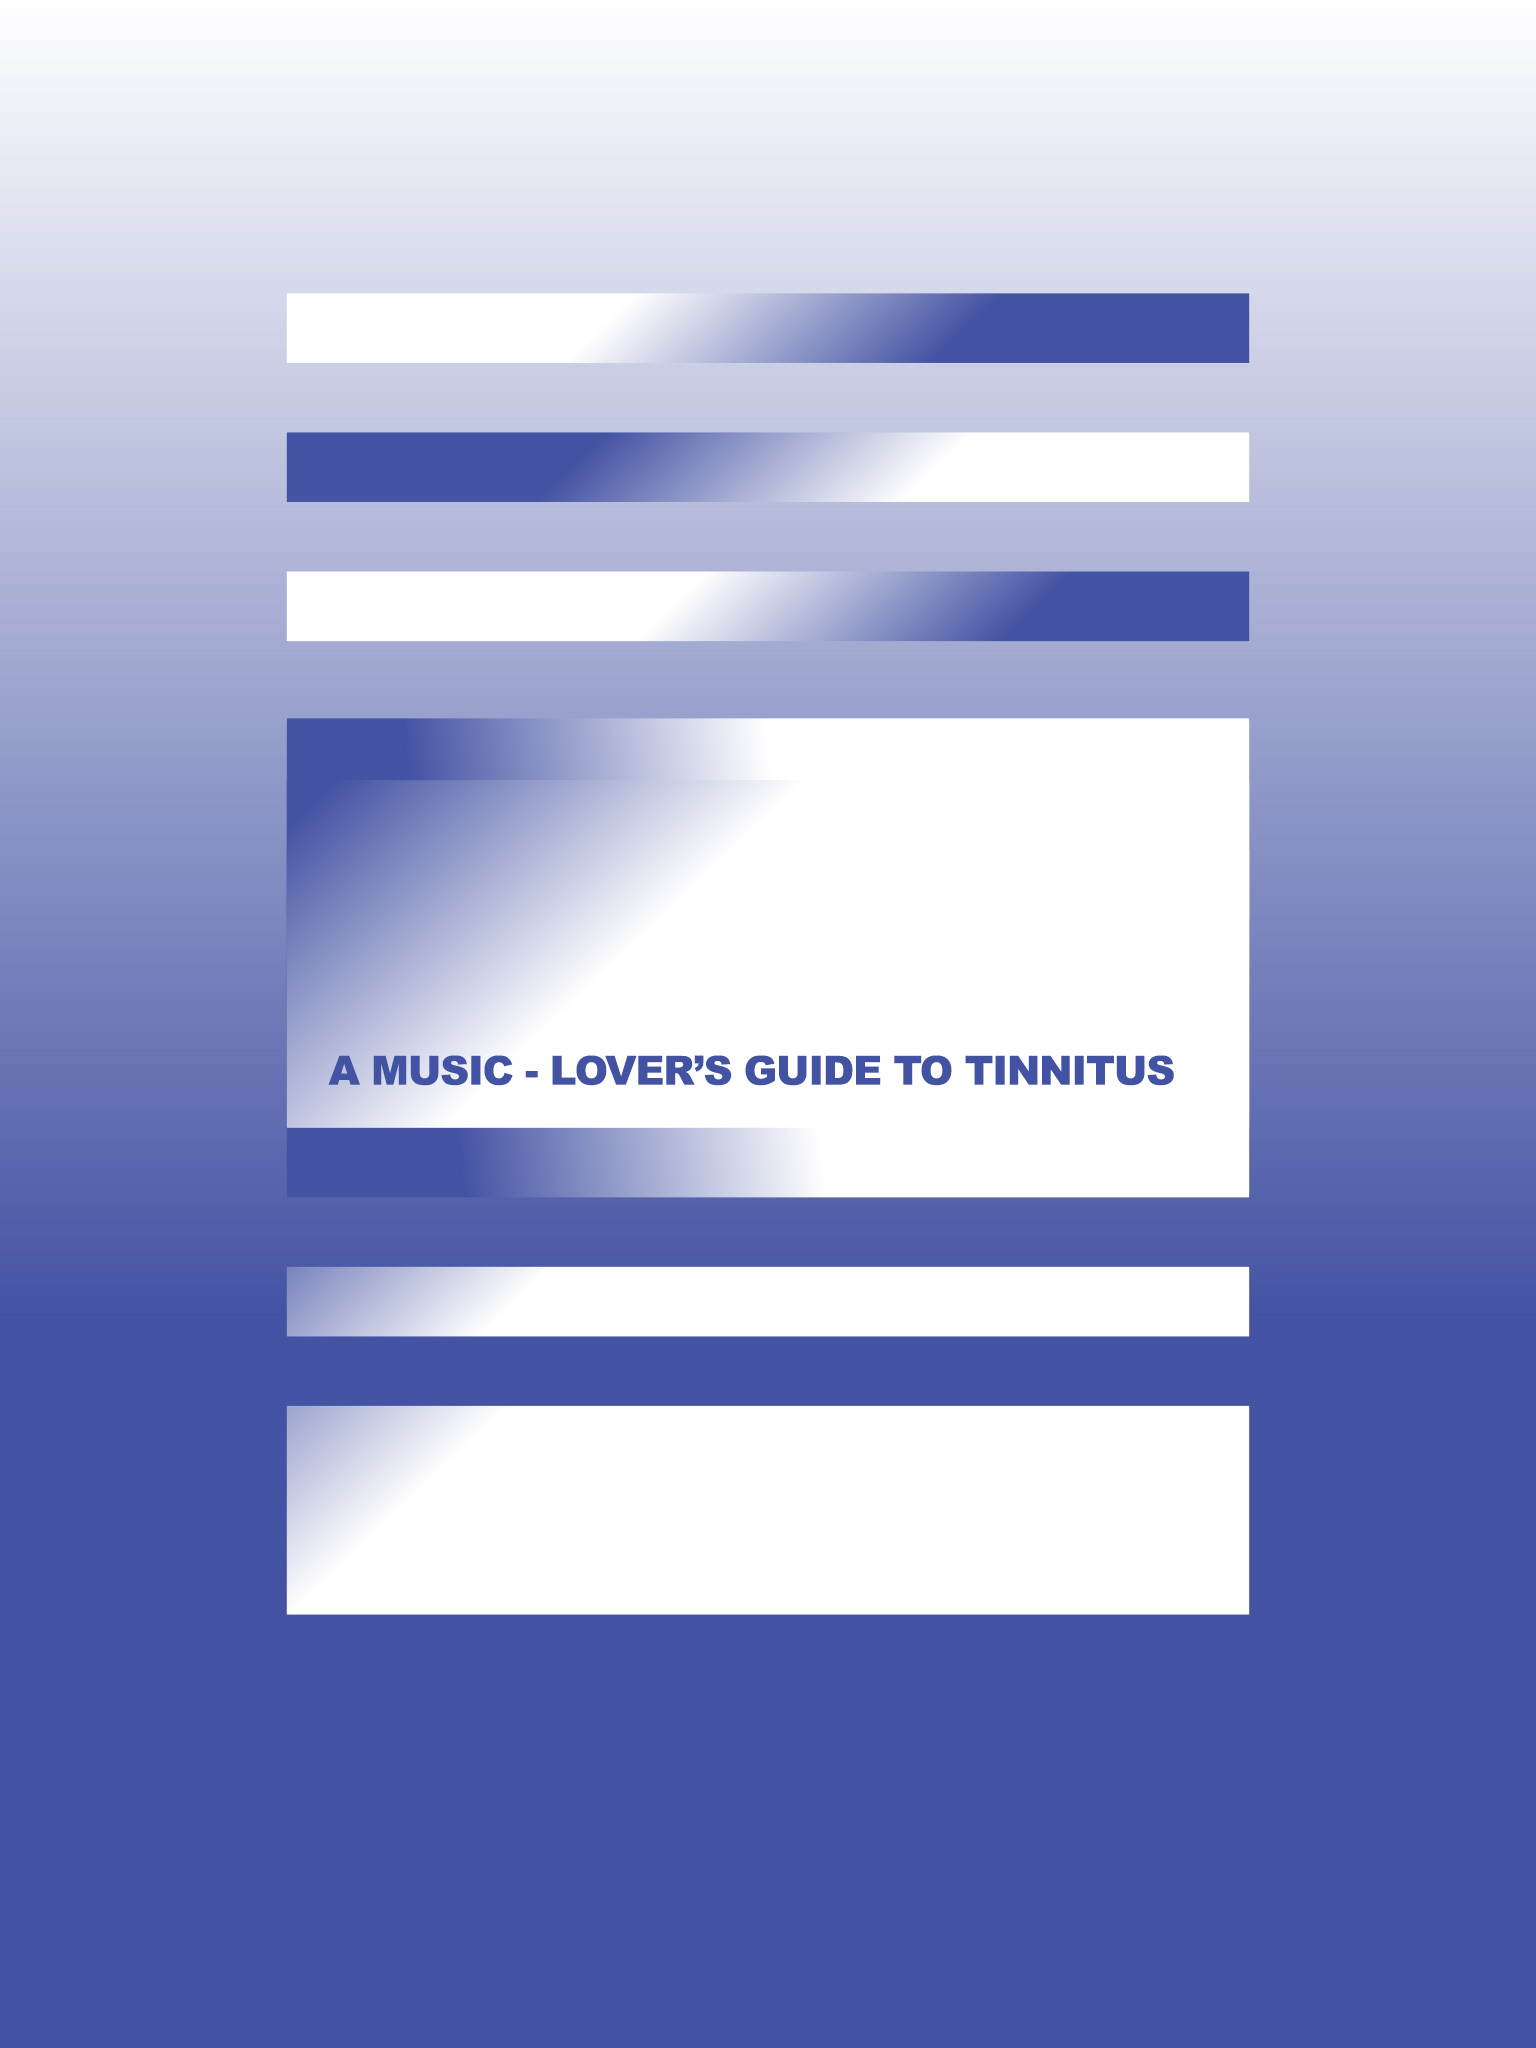 Ra A Music Lovers Guide To Tinnitus Three Way Switch Miswired Is Bigger Issue In Dance Than Wed Like Admit Angus Finlayson Lays Out Some Clear Ways Prevent It And Cope With